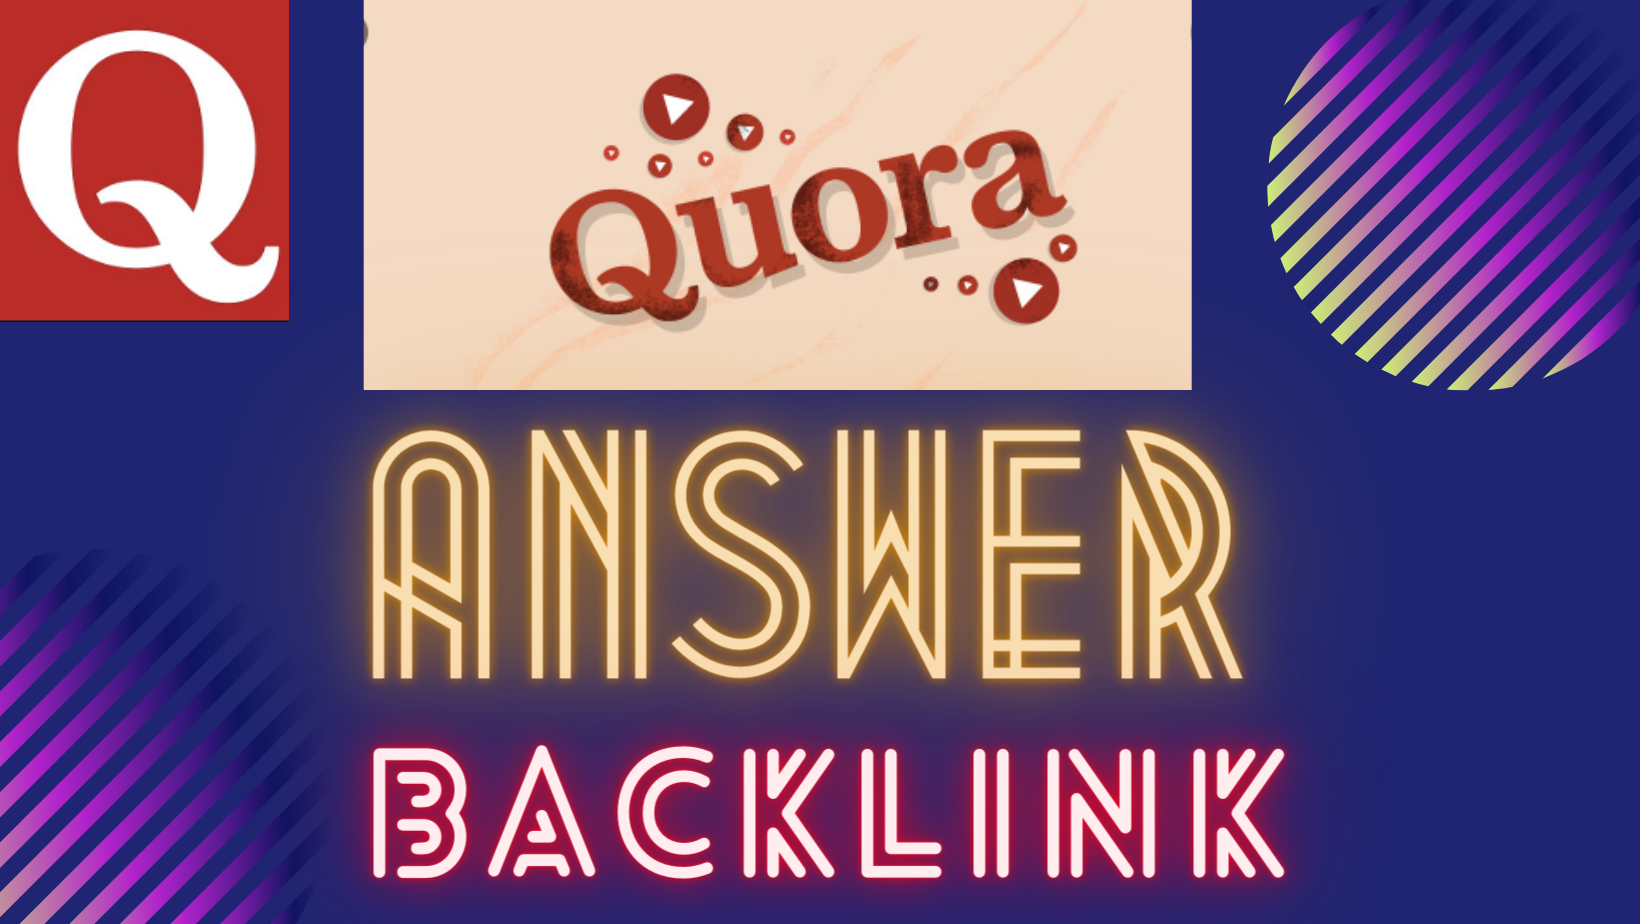 10 Quora Answers & 10 Upvotes Based on Keywords with Backlink